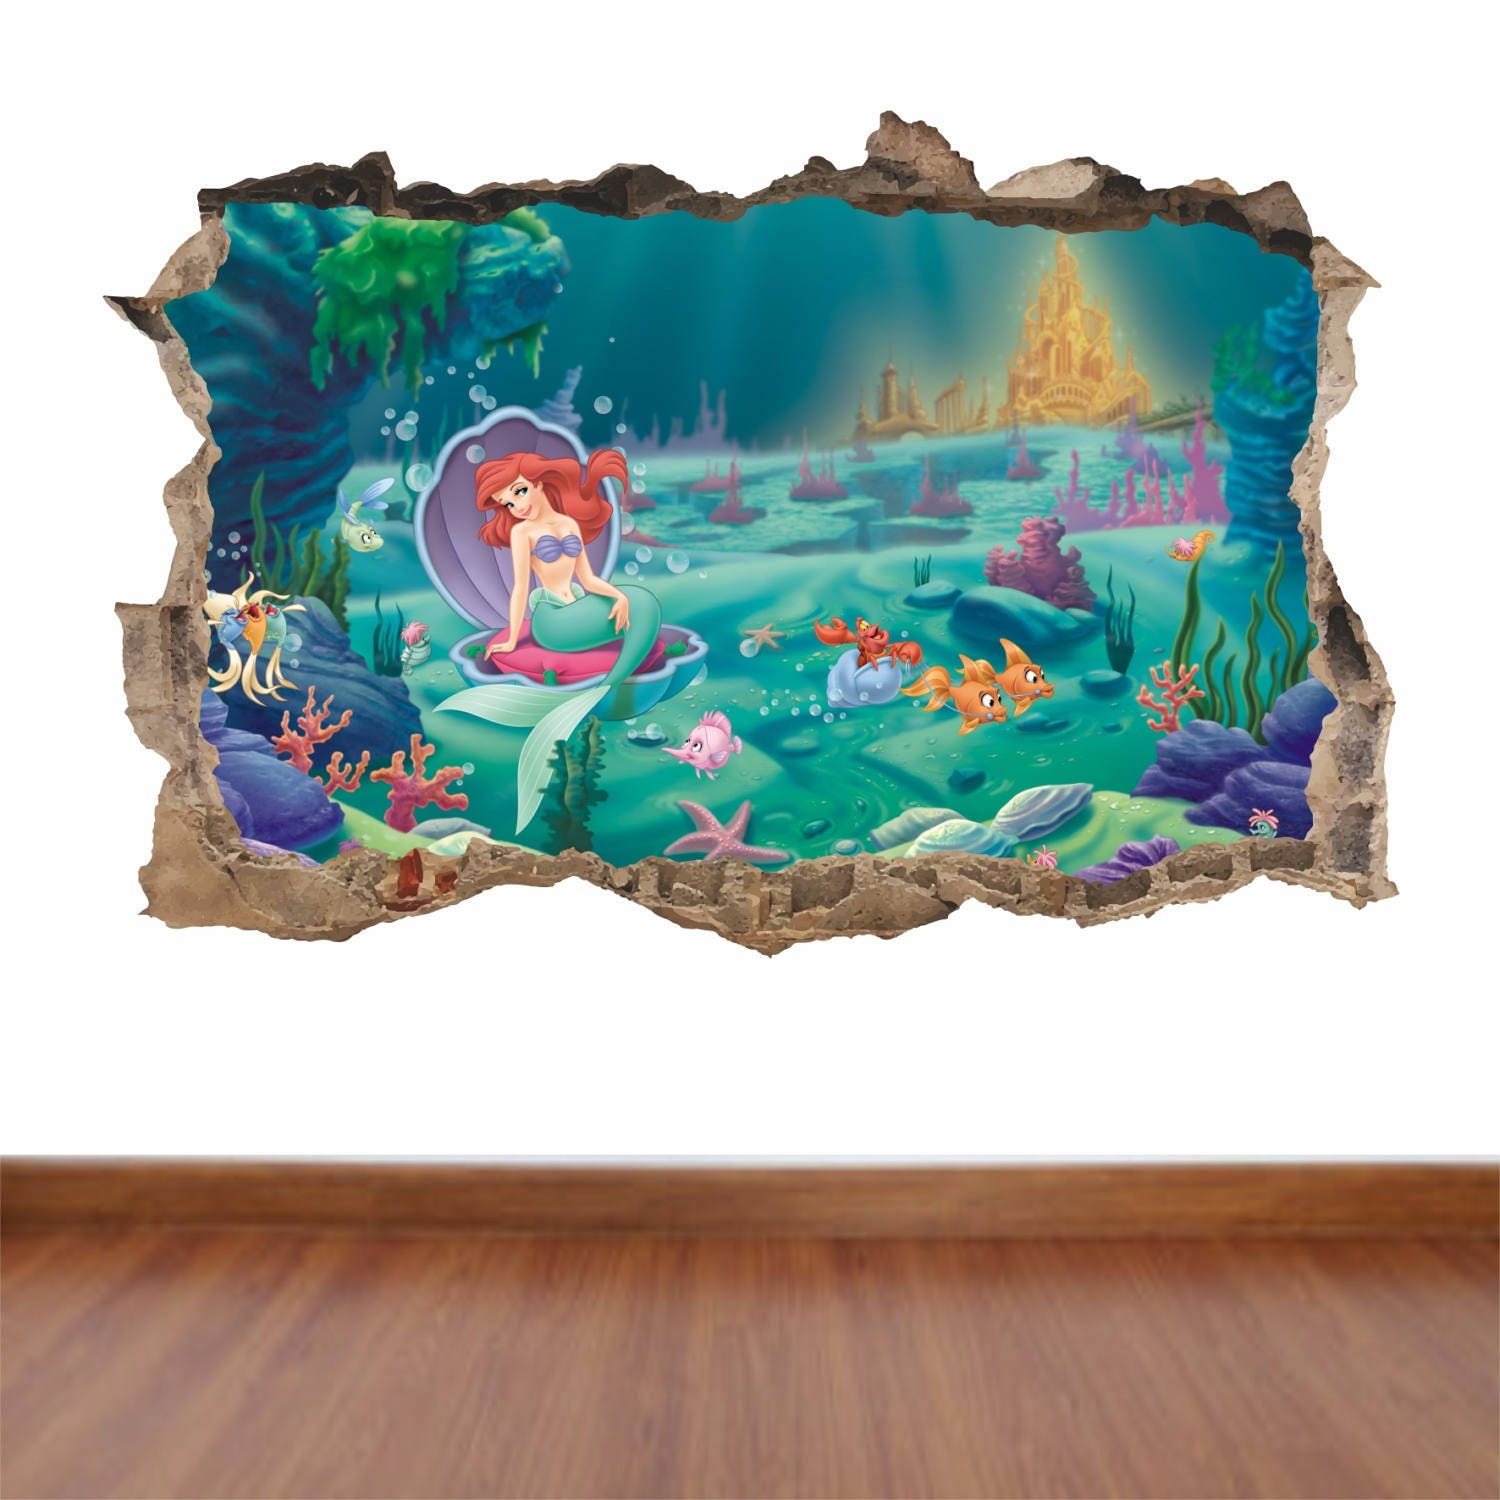 Little mermaid hole in the wall feature colour wall sticker decal little mermaid hole in the wall feature colour wall sticker decal poster vinyl in 4 sizes amipublicfo Images